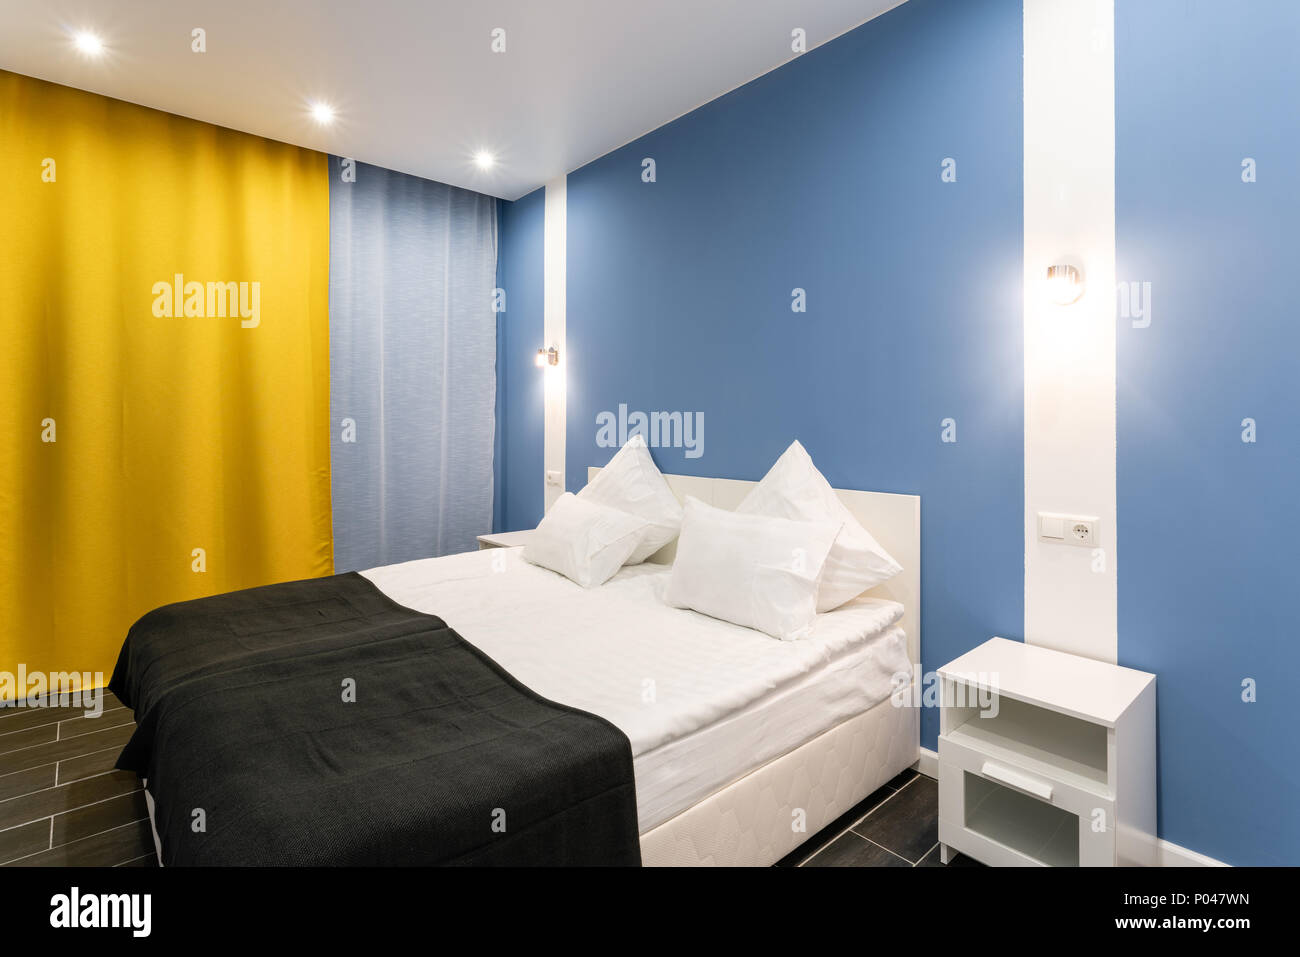 Hotel standart room. modern bedroom with white pillows. simple and ...